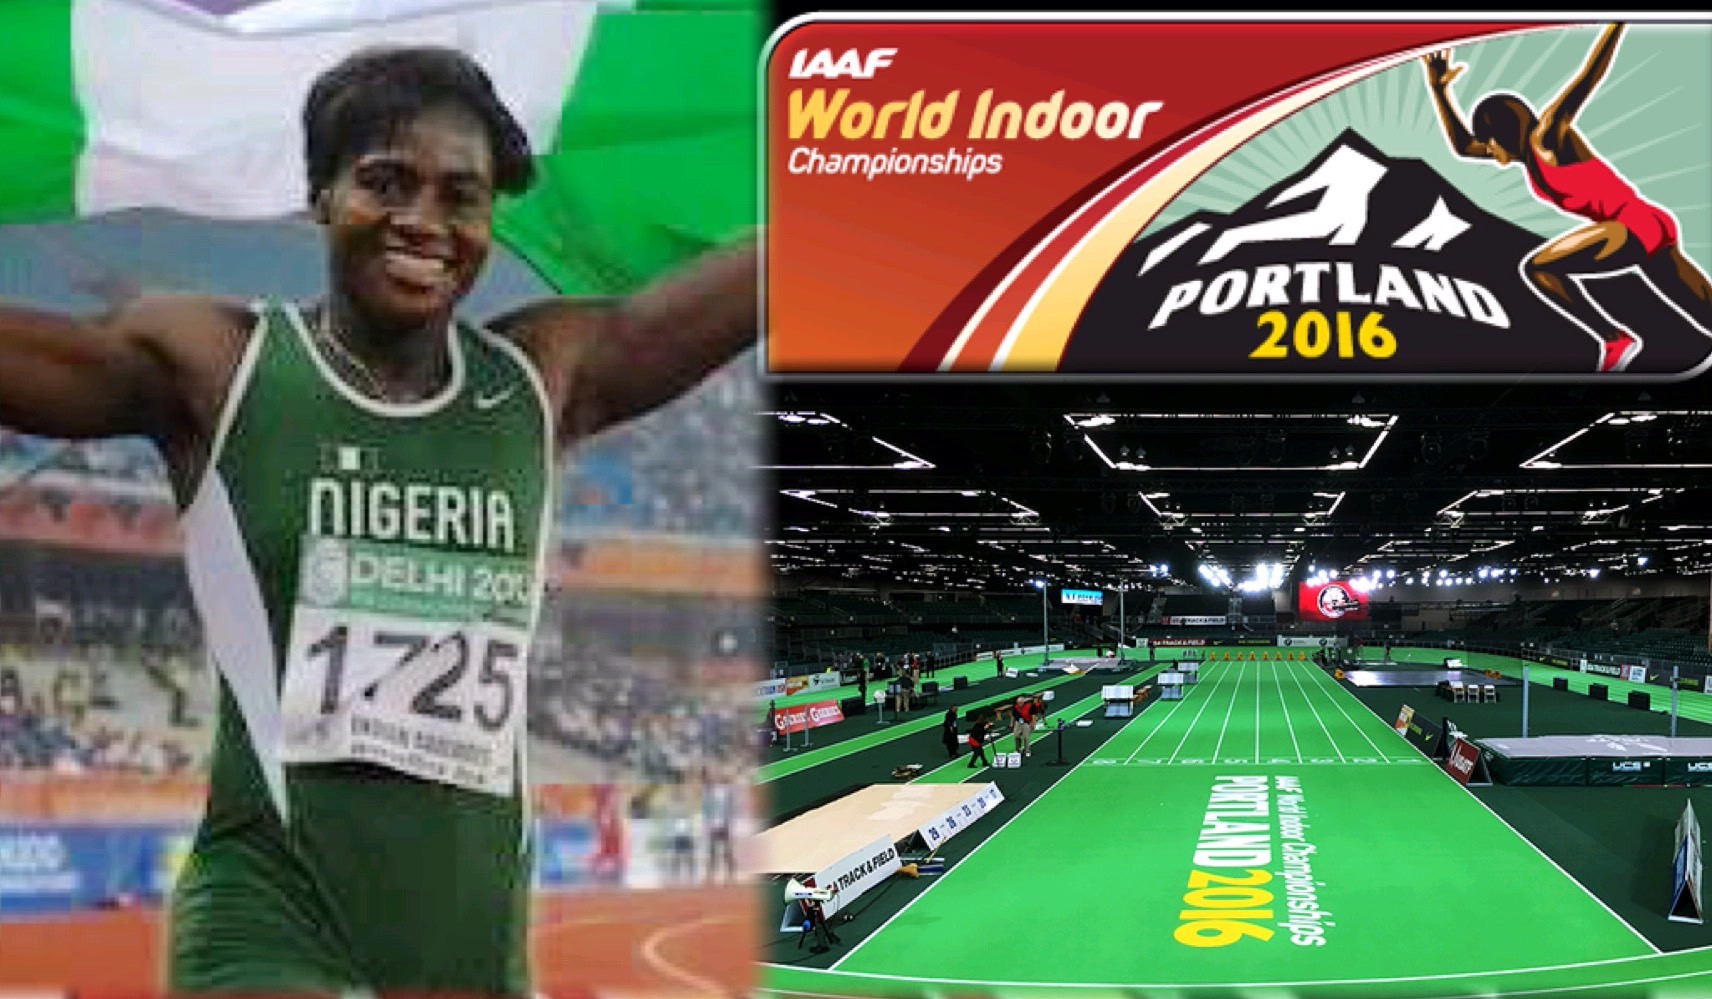 IAAF World Indoor Championships: Osayomi Backs Team Nigeria For Medals Rush